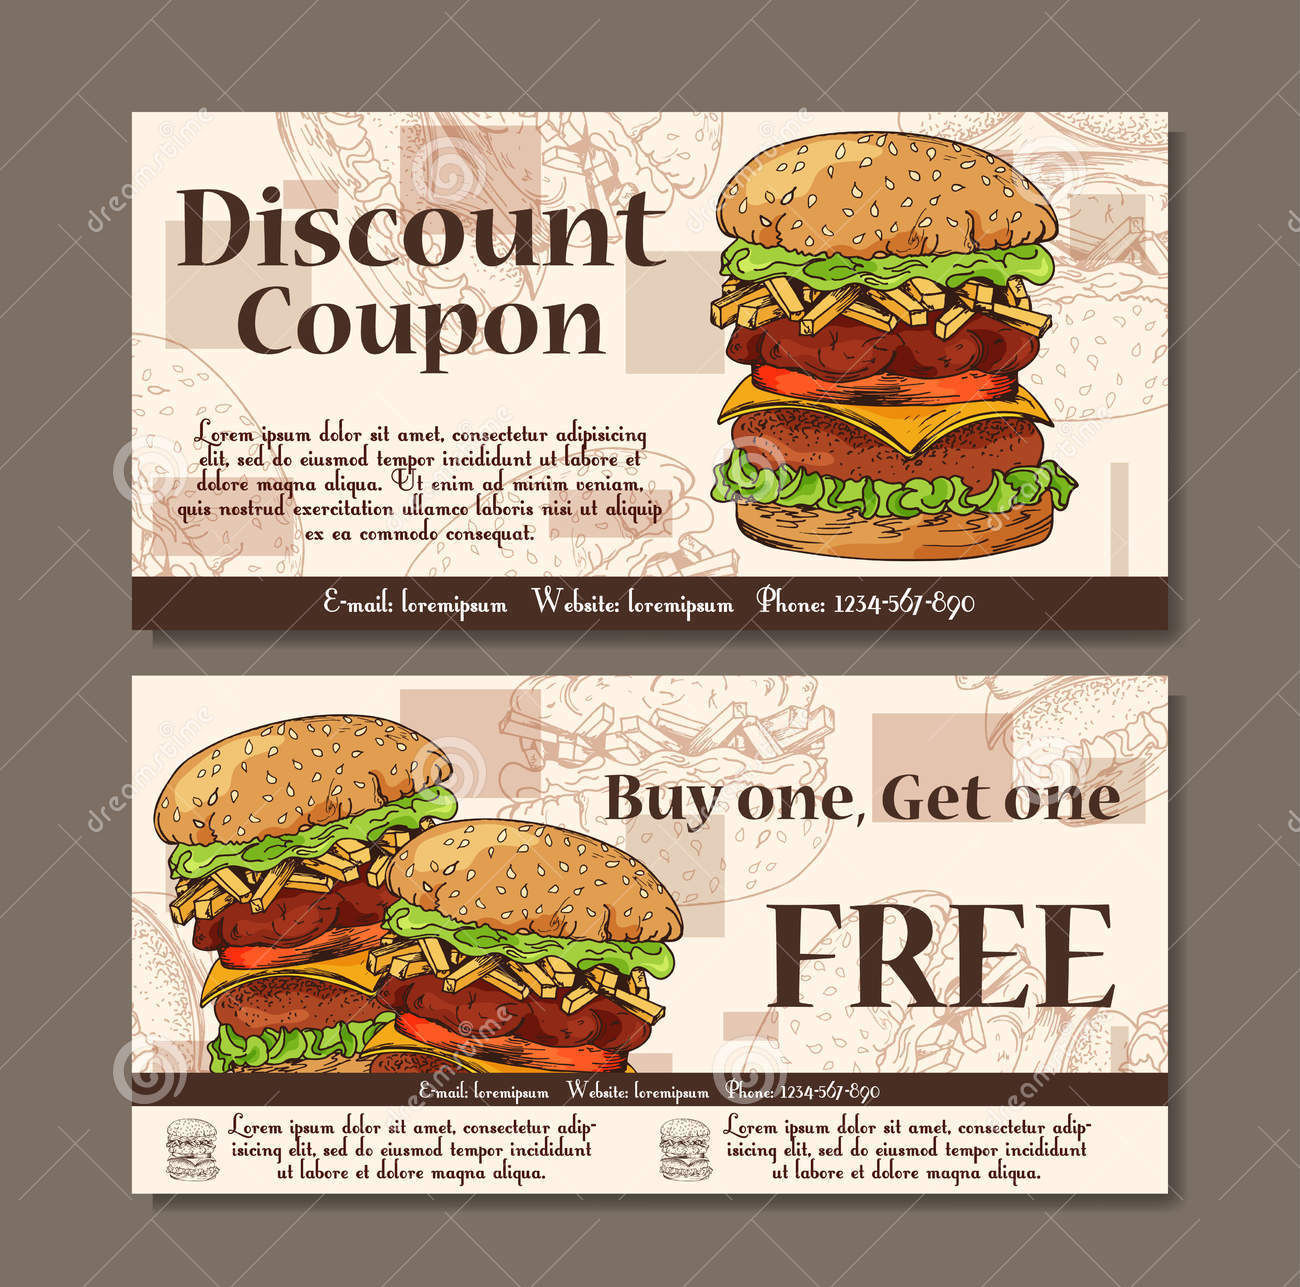 Restaurants discount coupons